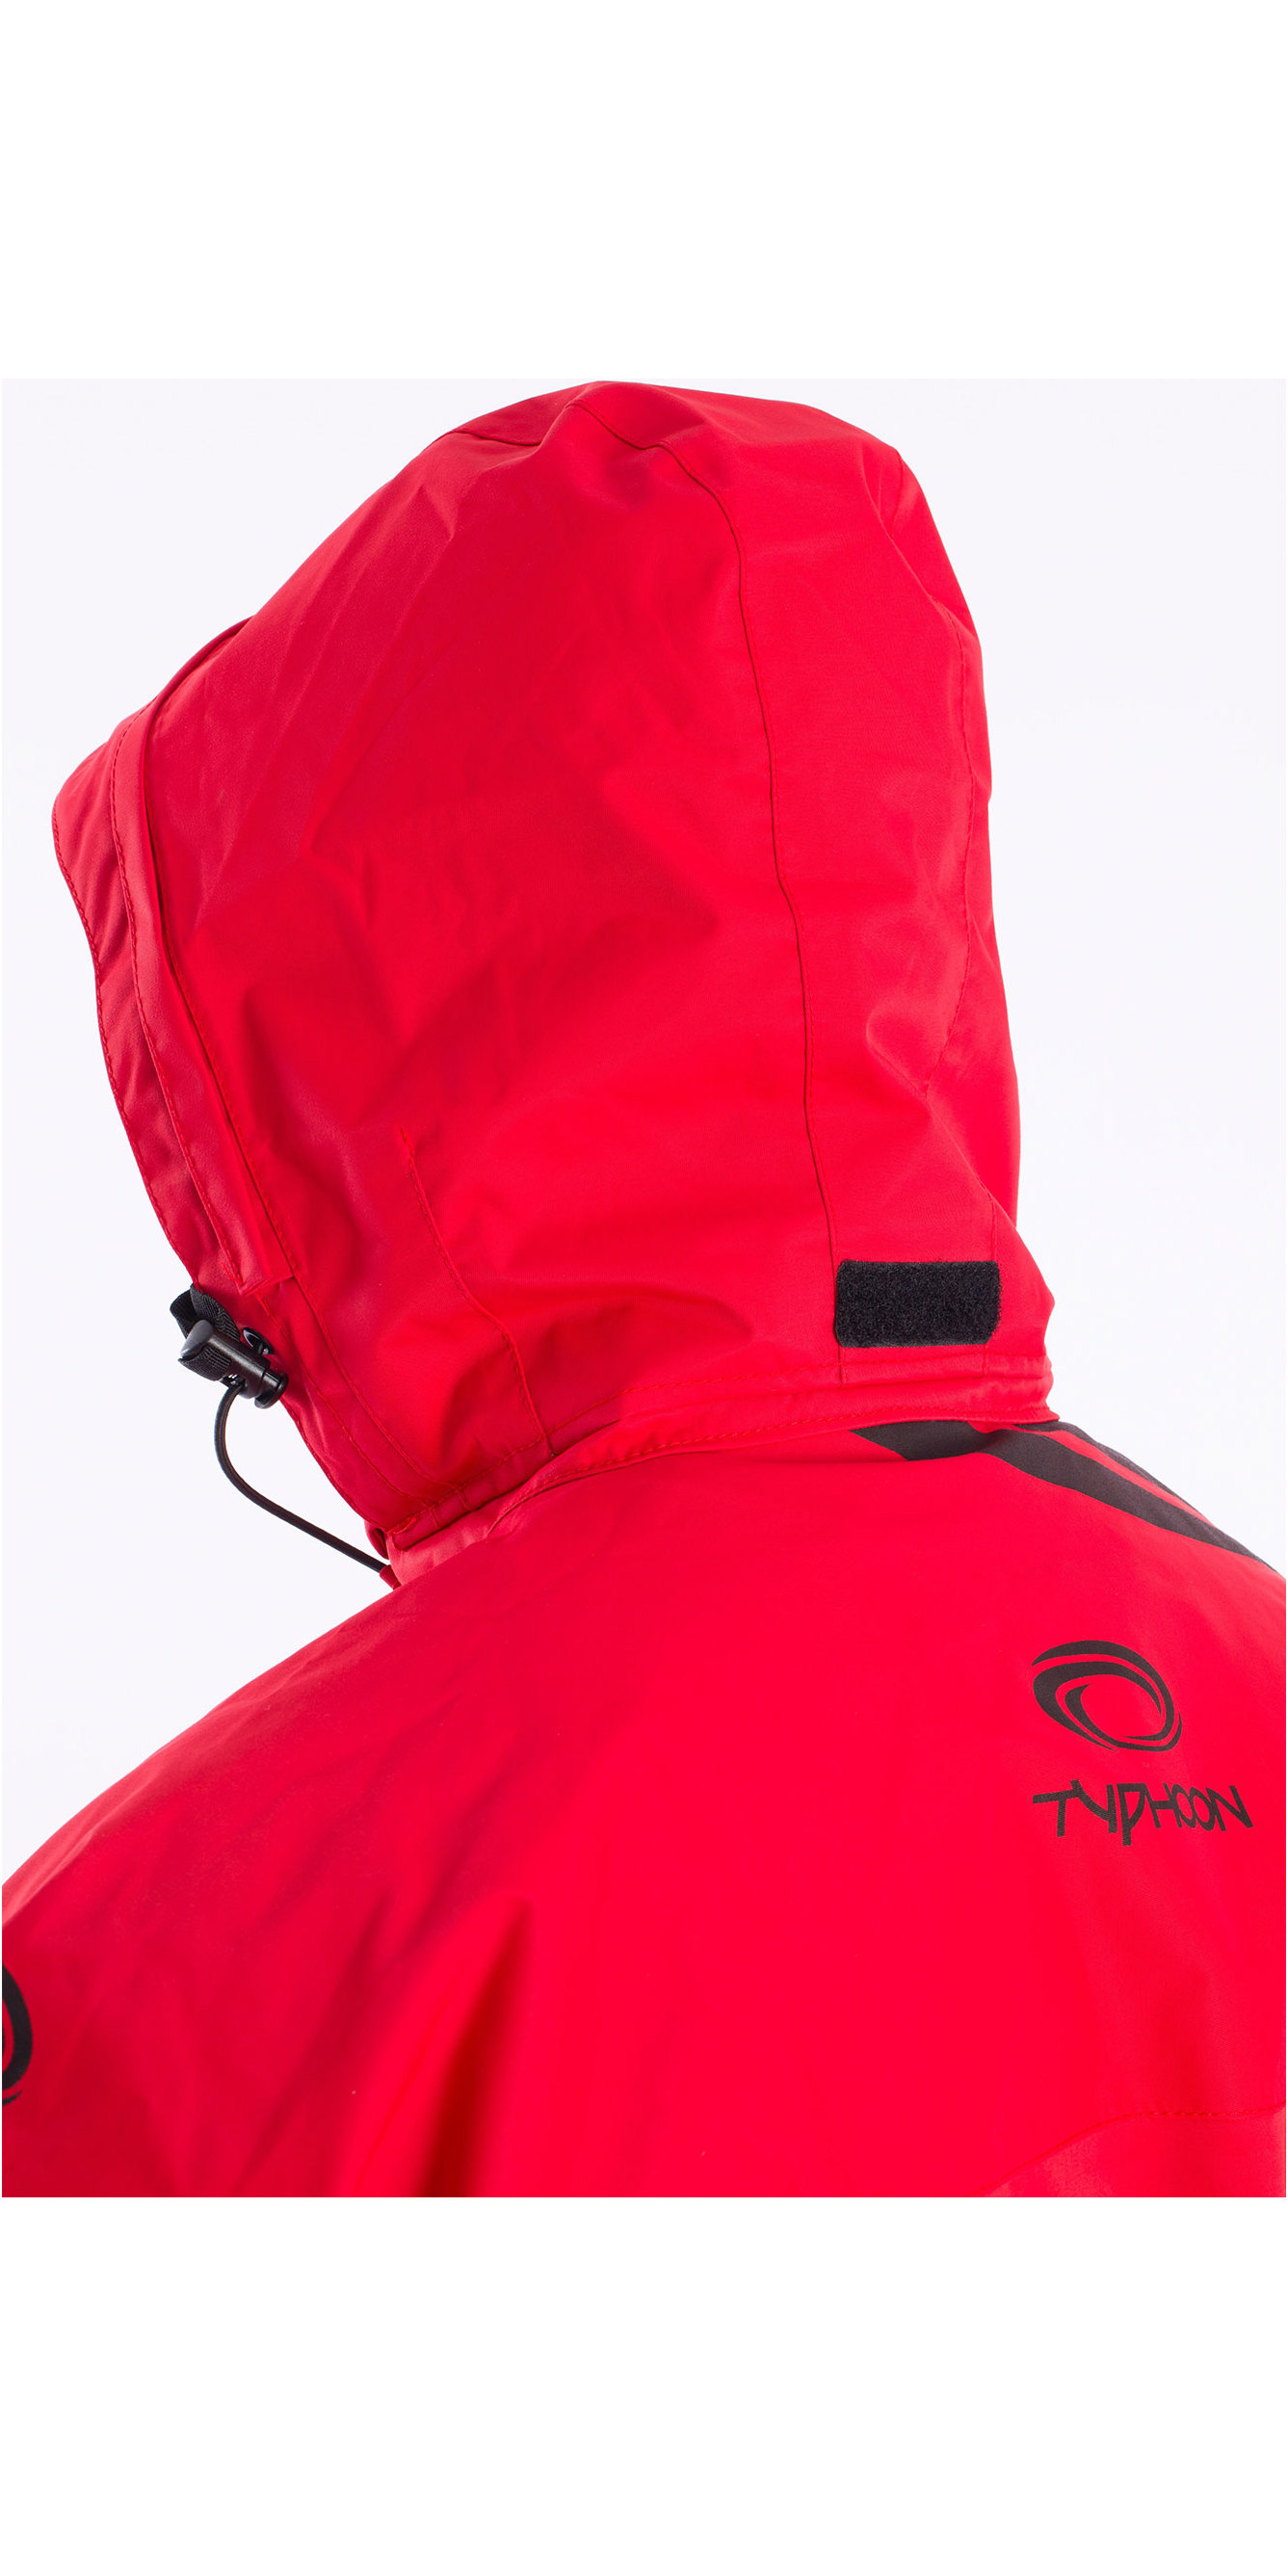 2019 Typhoon Sirocco Hooded Dinghy Kayak Smock Red 430360